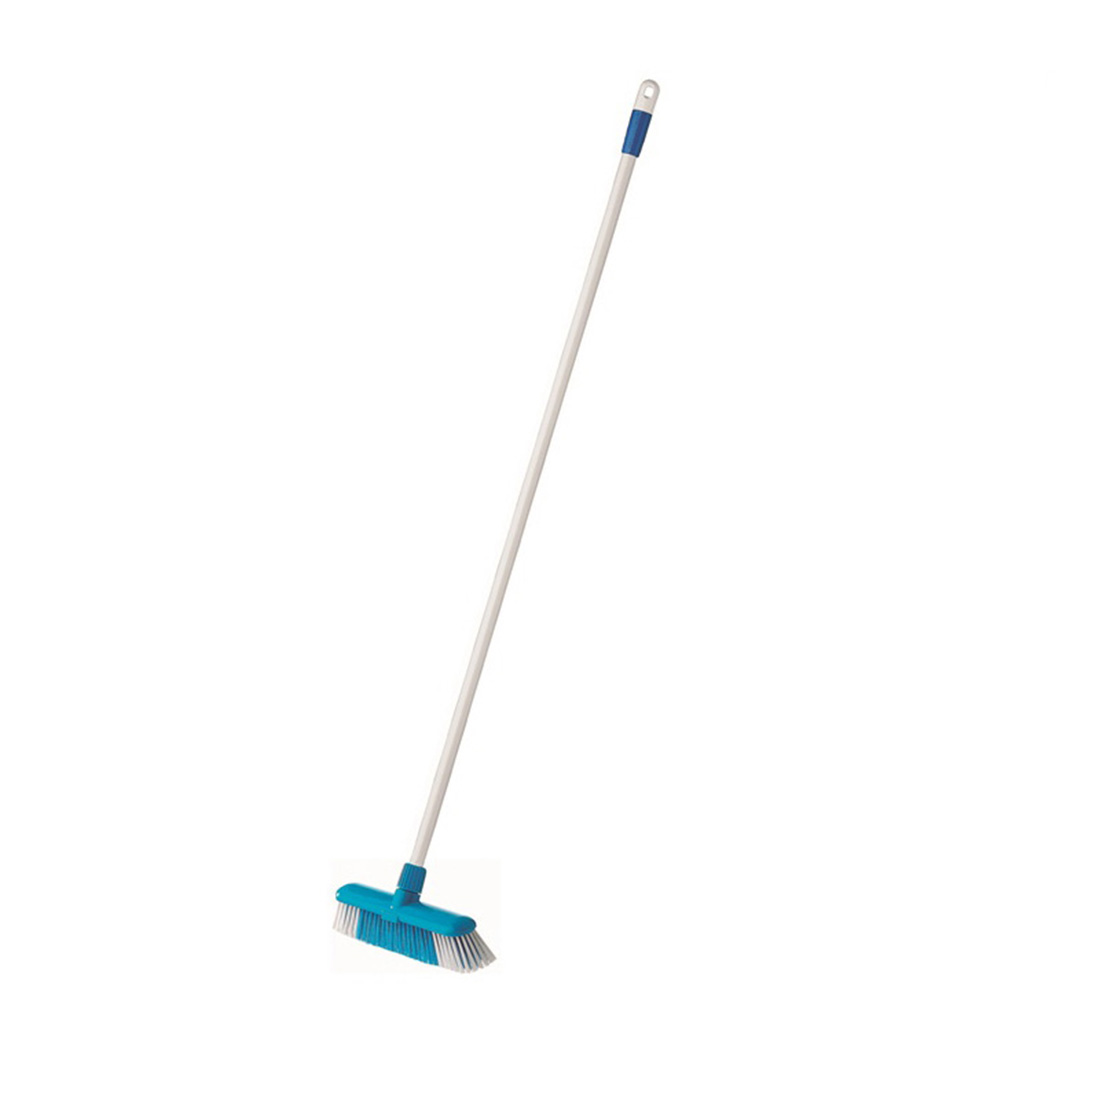 Raven Deluxe Indoor Household Broom